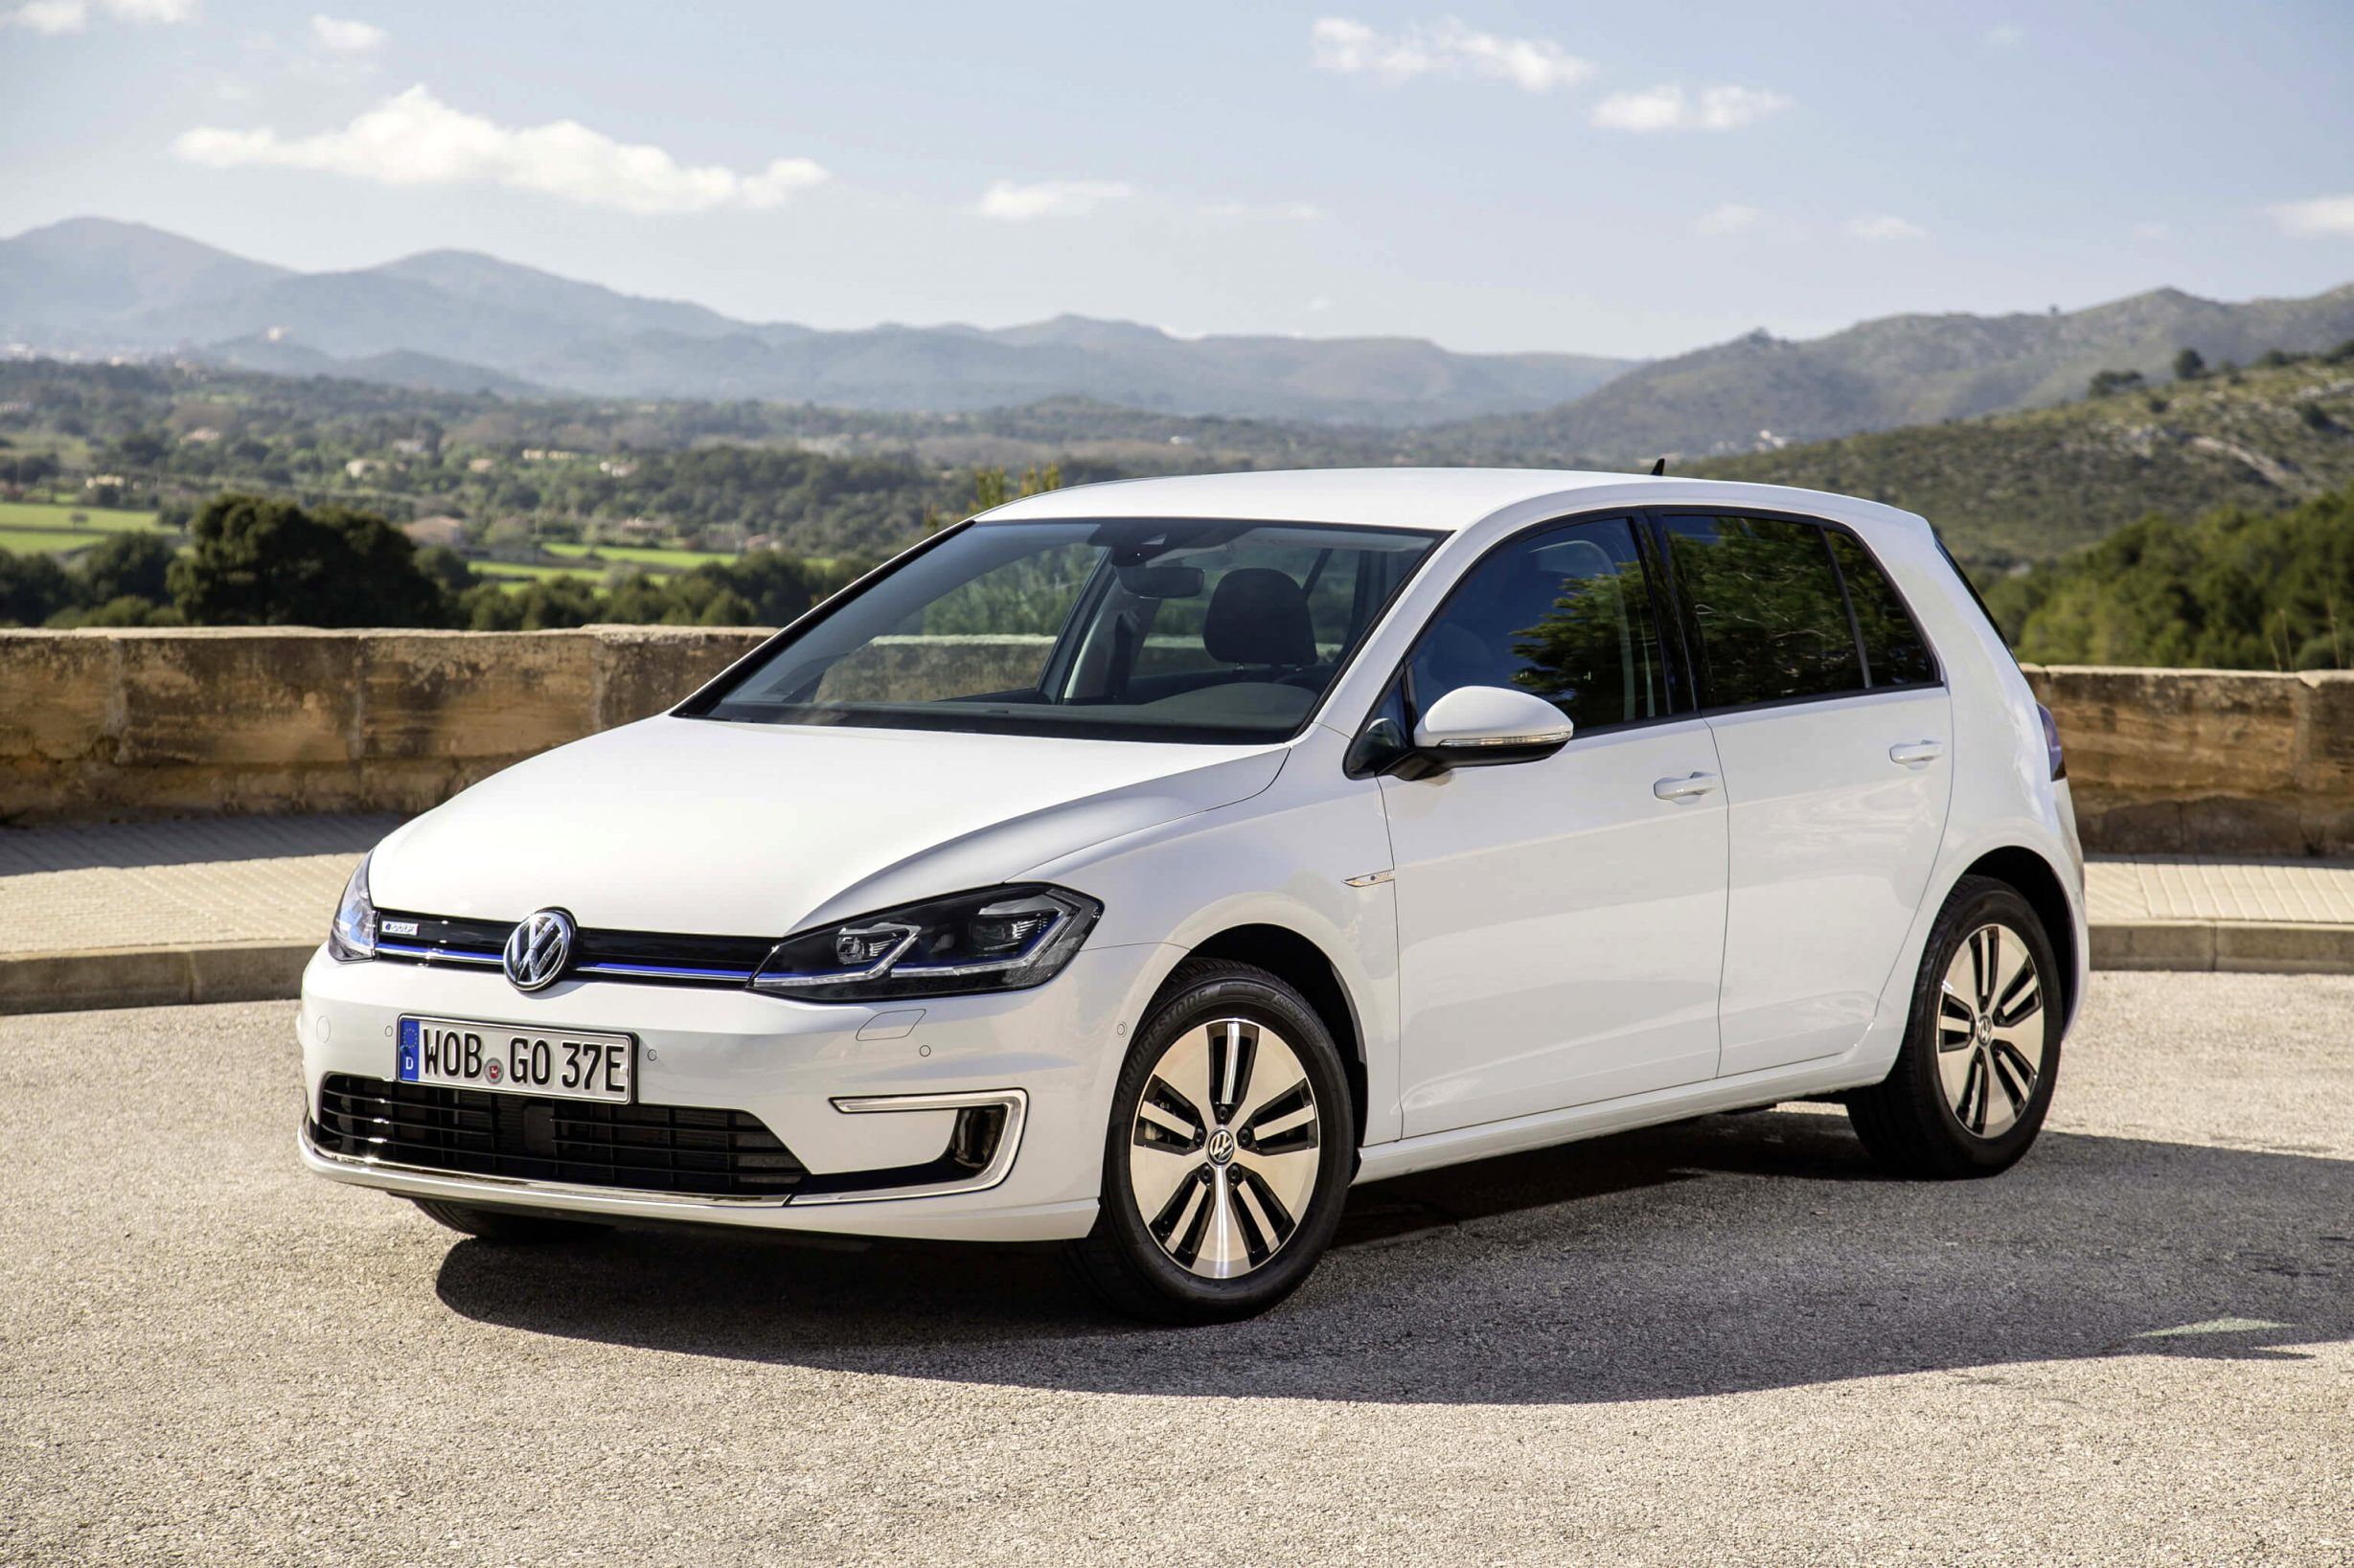 2021 volkswagen e-golf New Model and Performance